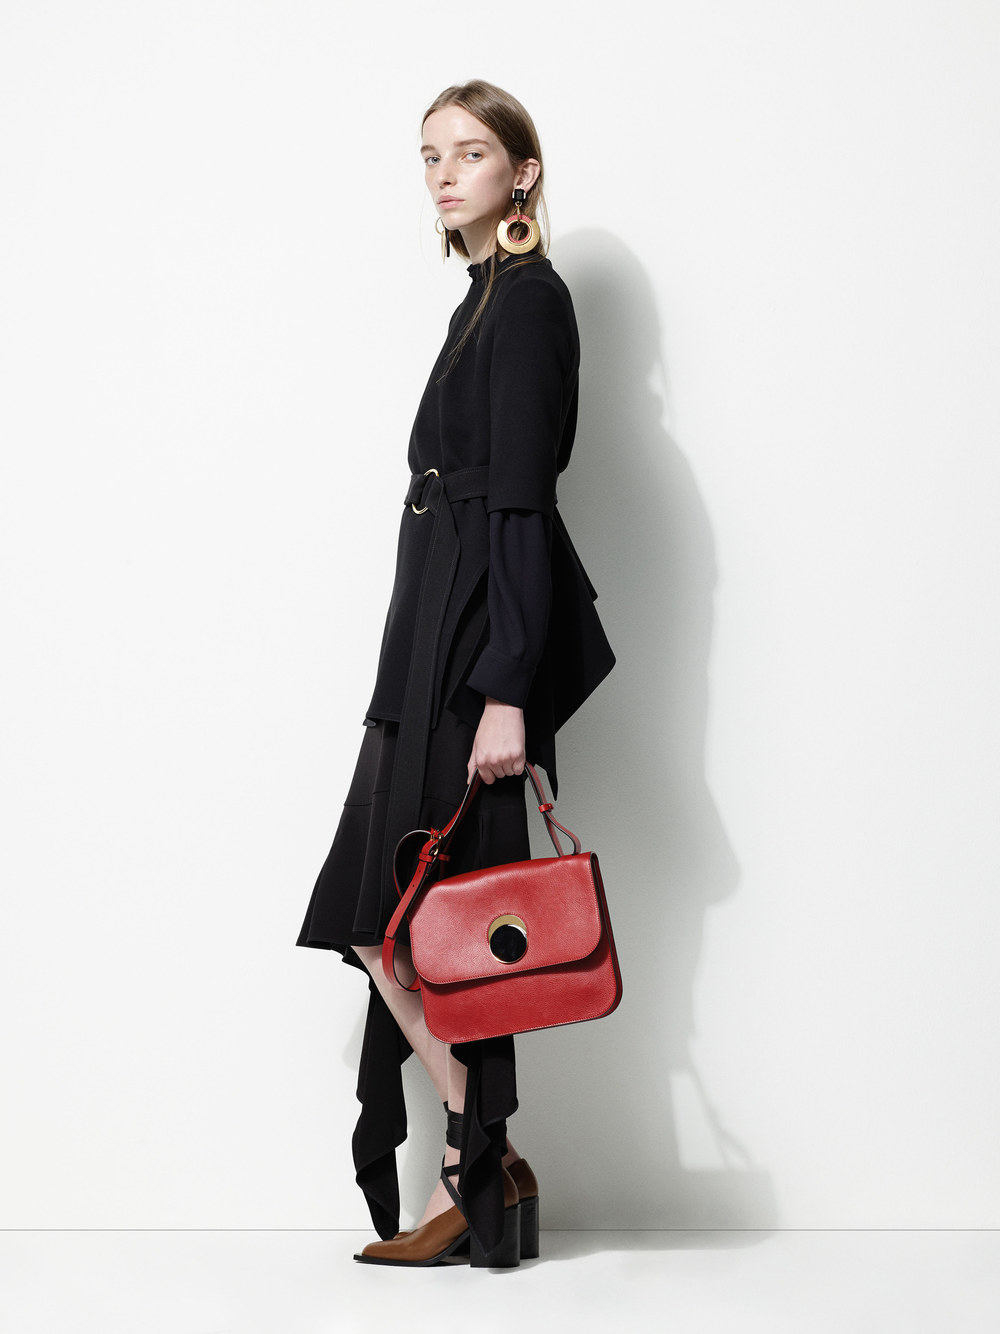 marni-pre-fall-2016-lookbook-12.jpg